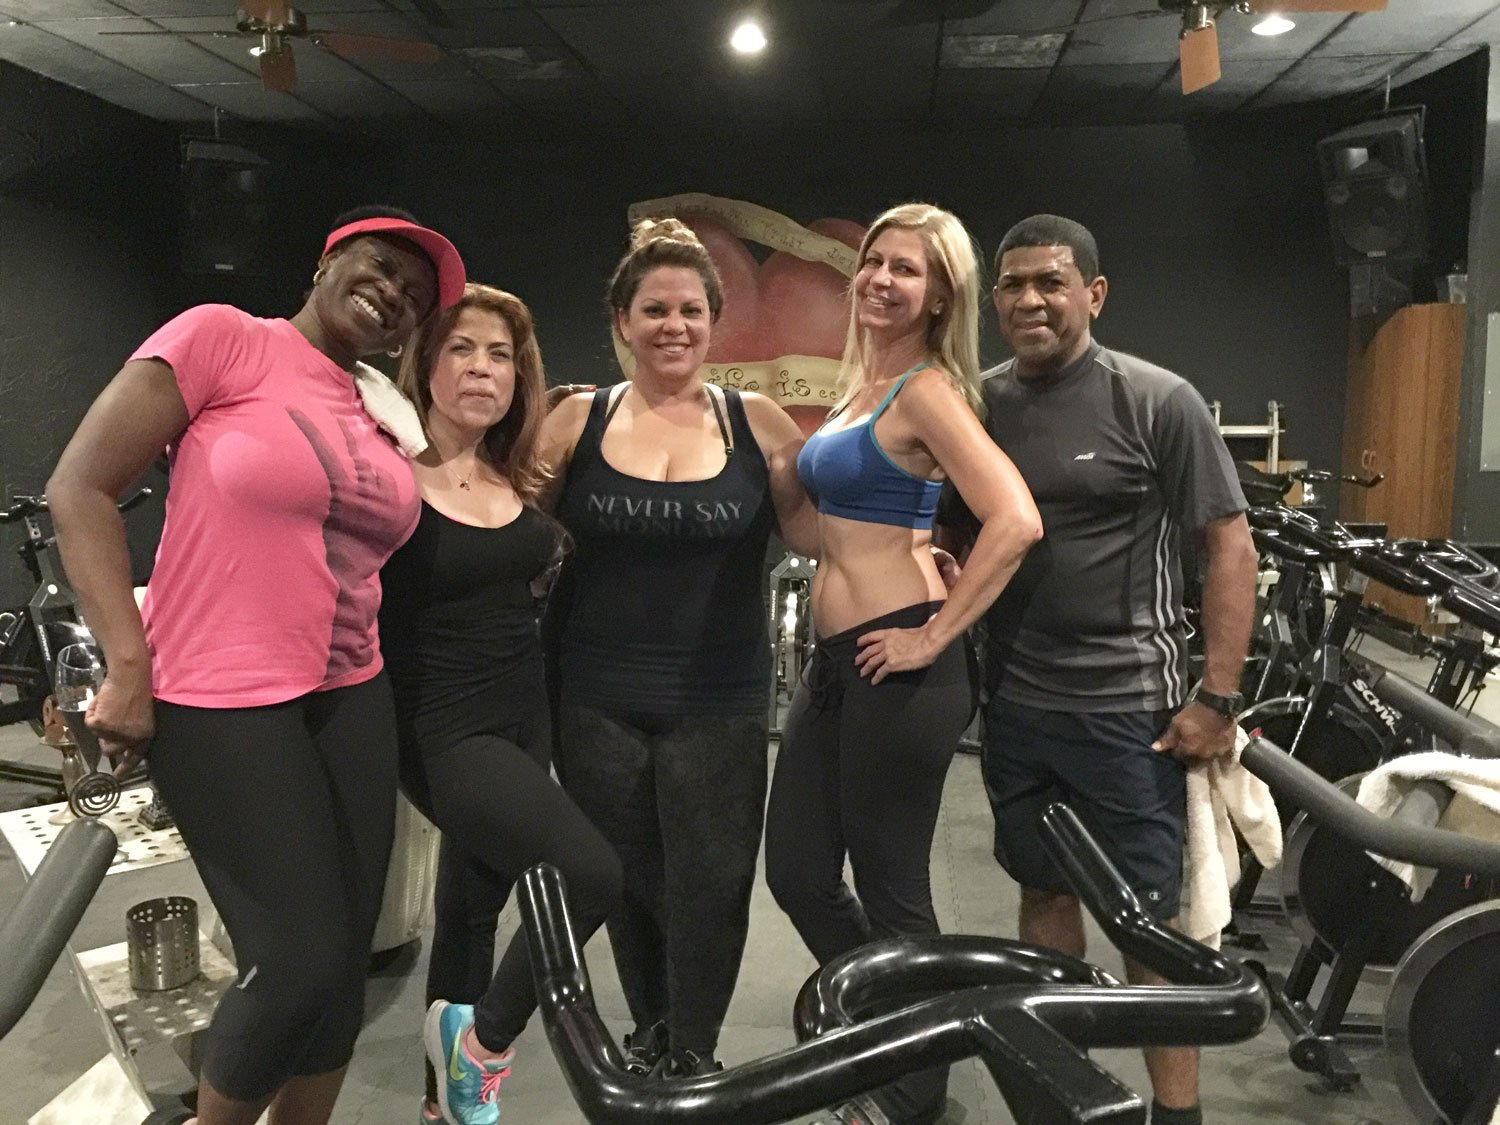 Debbie, Lourdes, Marlene, Marietta and Juan right after Spinning